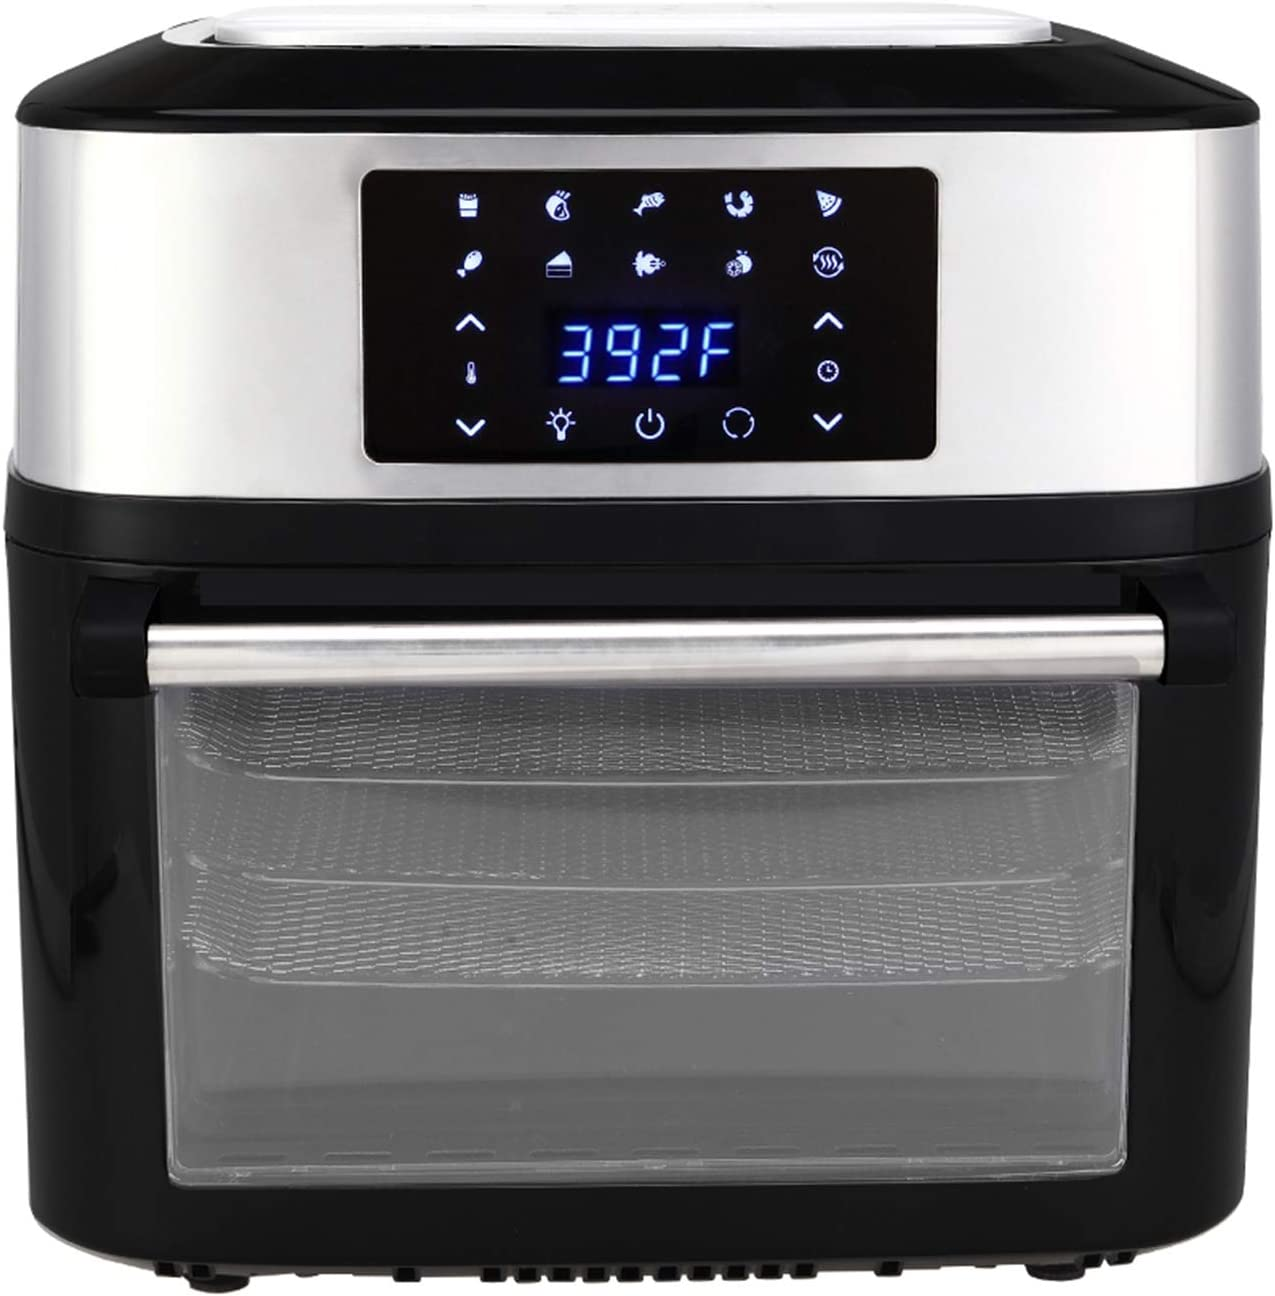 Air Fryers,8-in-1 Digital Air Fryer,Large 17 Quart 1800W Oven with Touch Control Panel for Commercial and Home Use 120V / 60Hz (black)